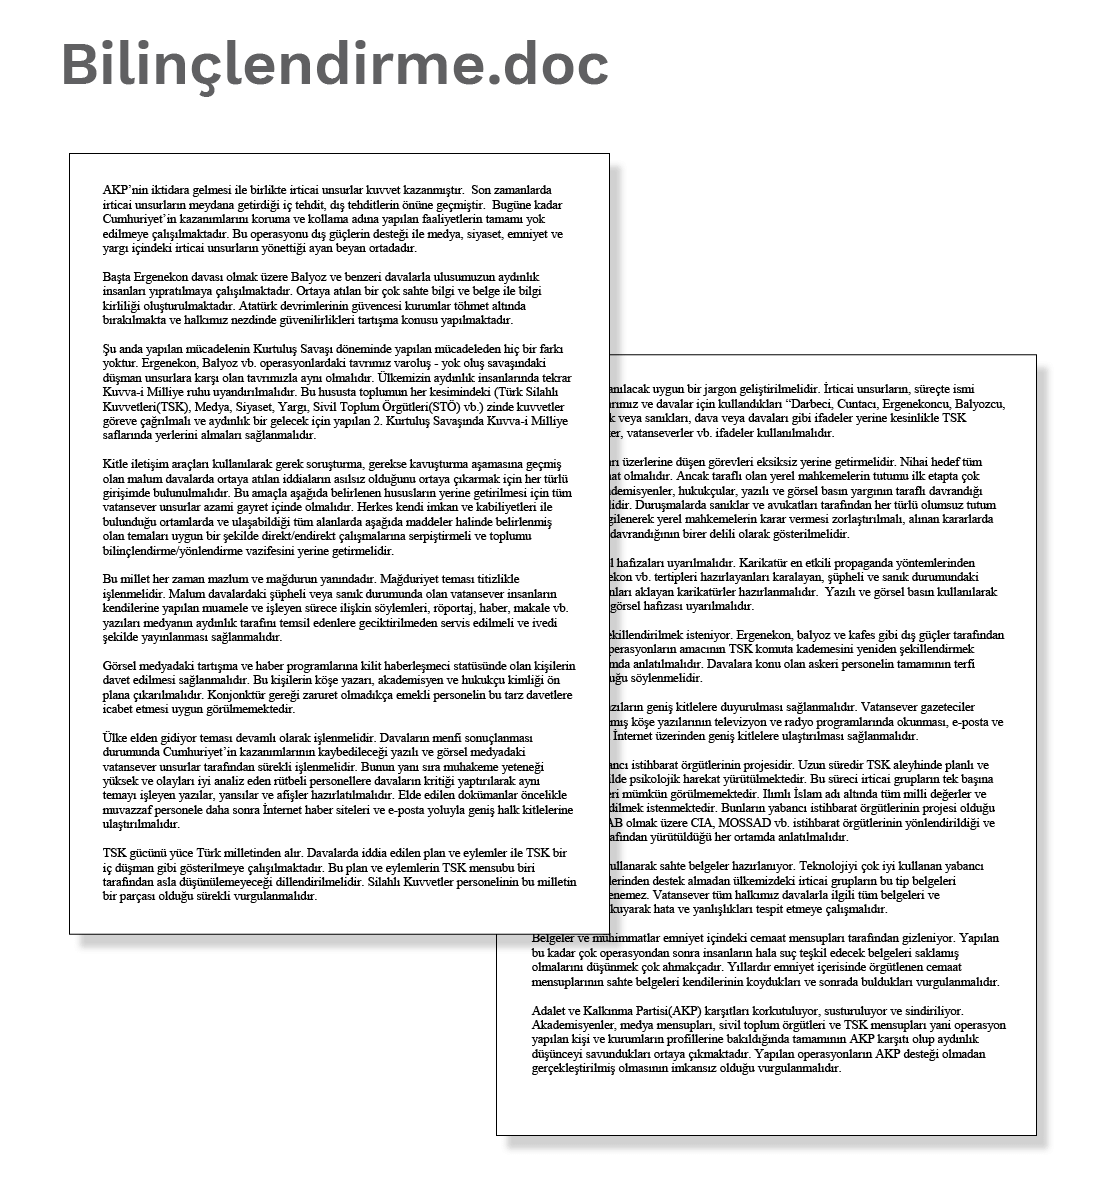 Document 1: Bilinçlendirme.doc